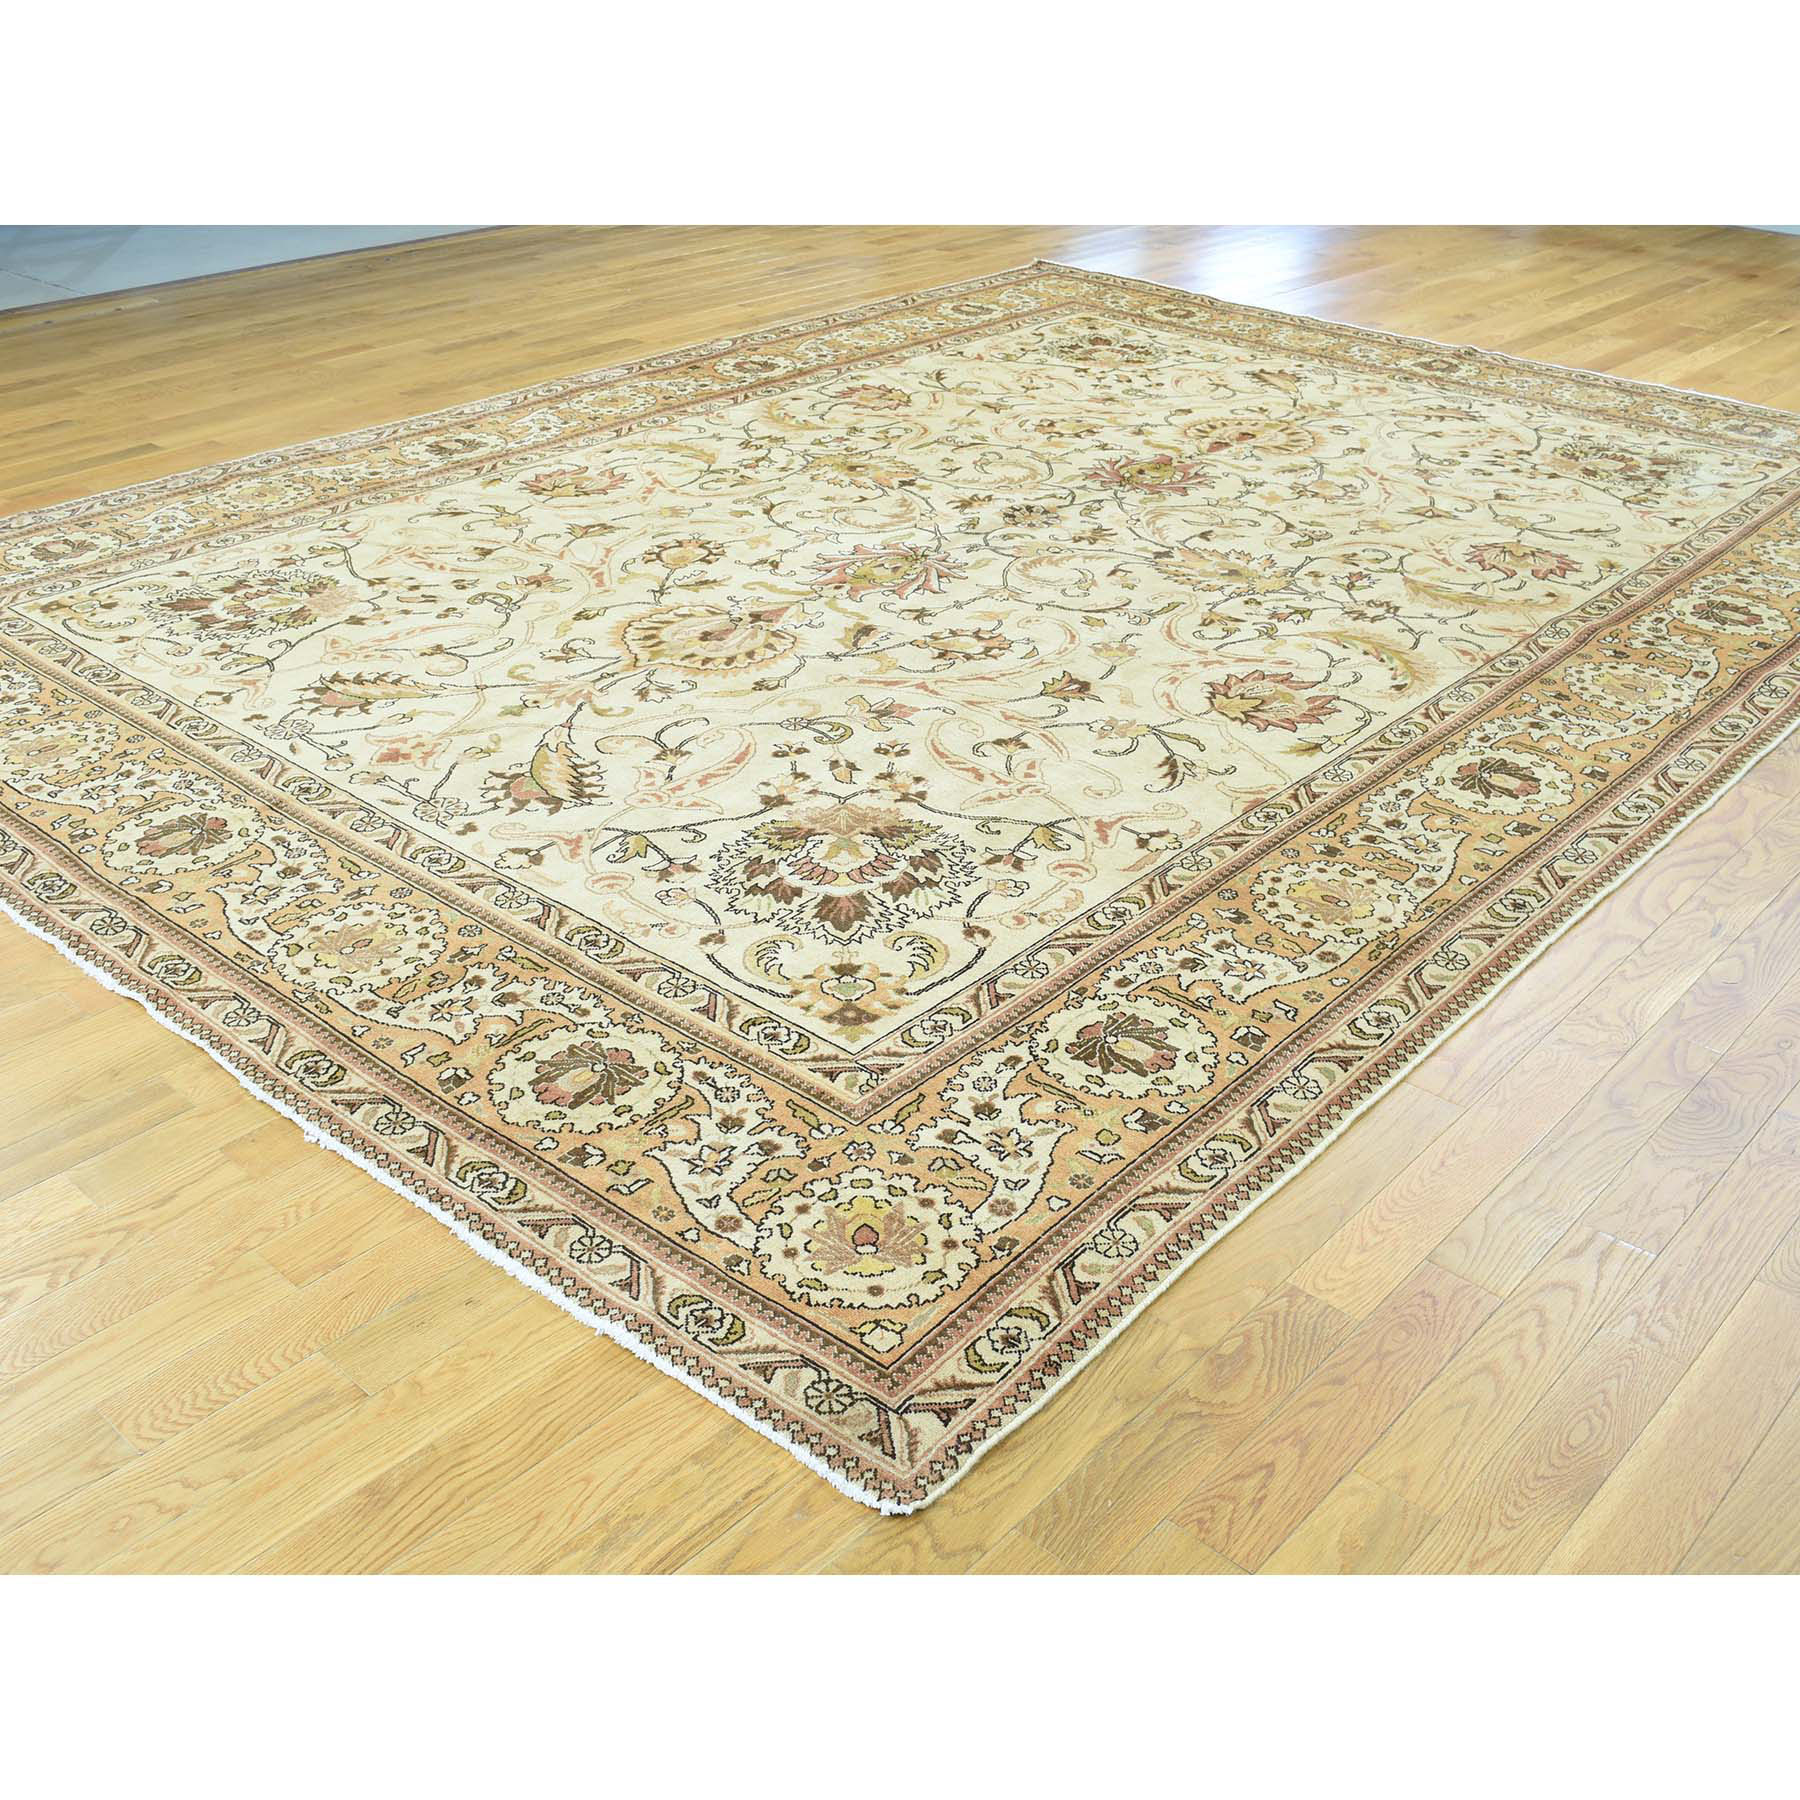 9-8 x12-10  Antique Persian Tabriz Hand-Knotted Full Pile Oriental Rug